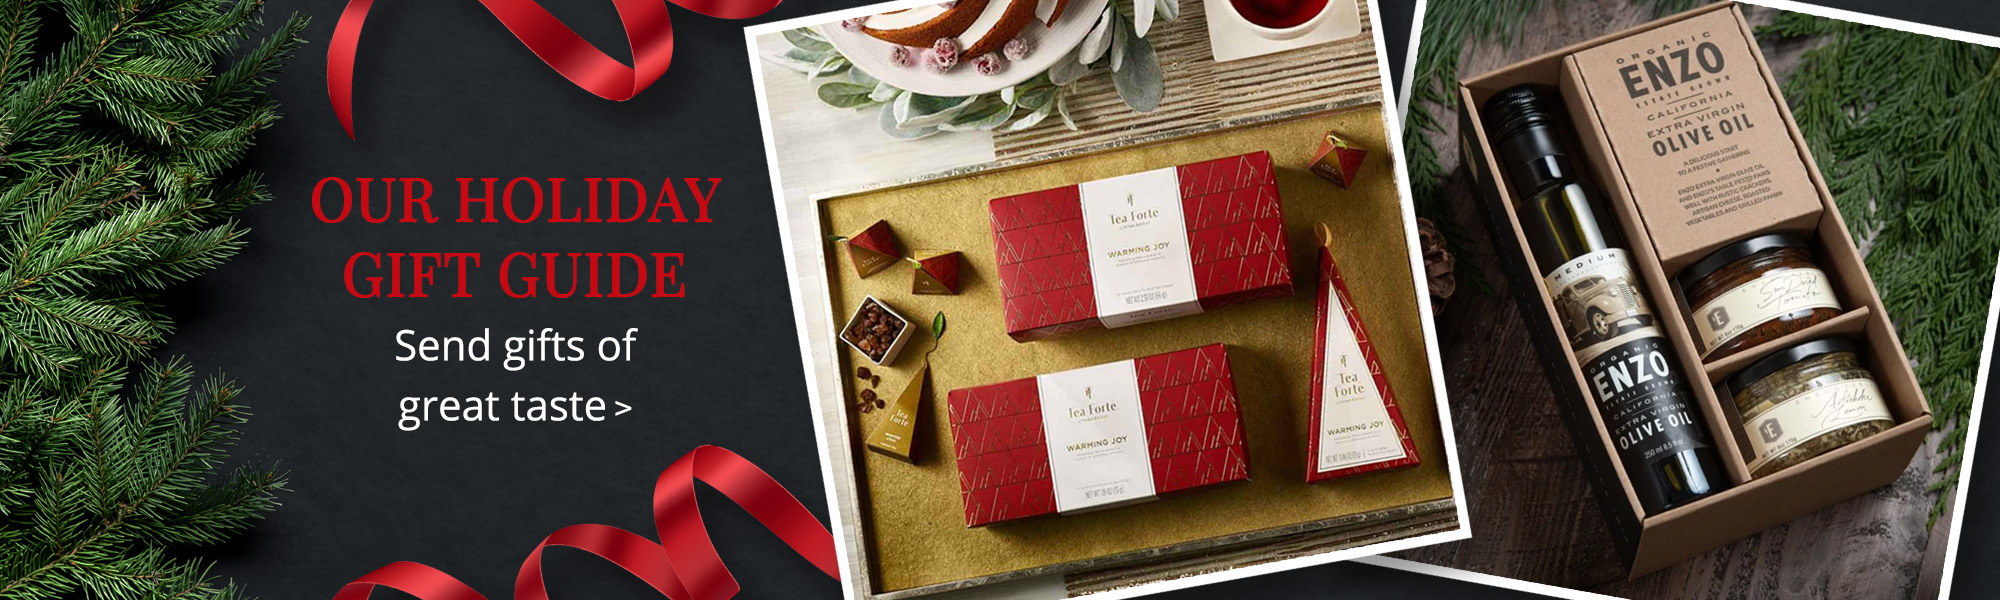 OUR HOLIDAY GIFT GUIDE: Send gifts of great taste >